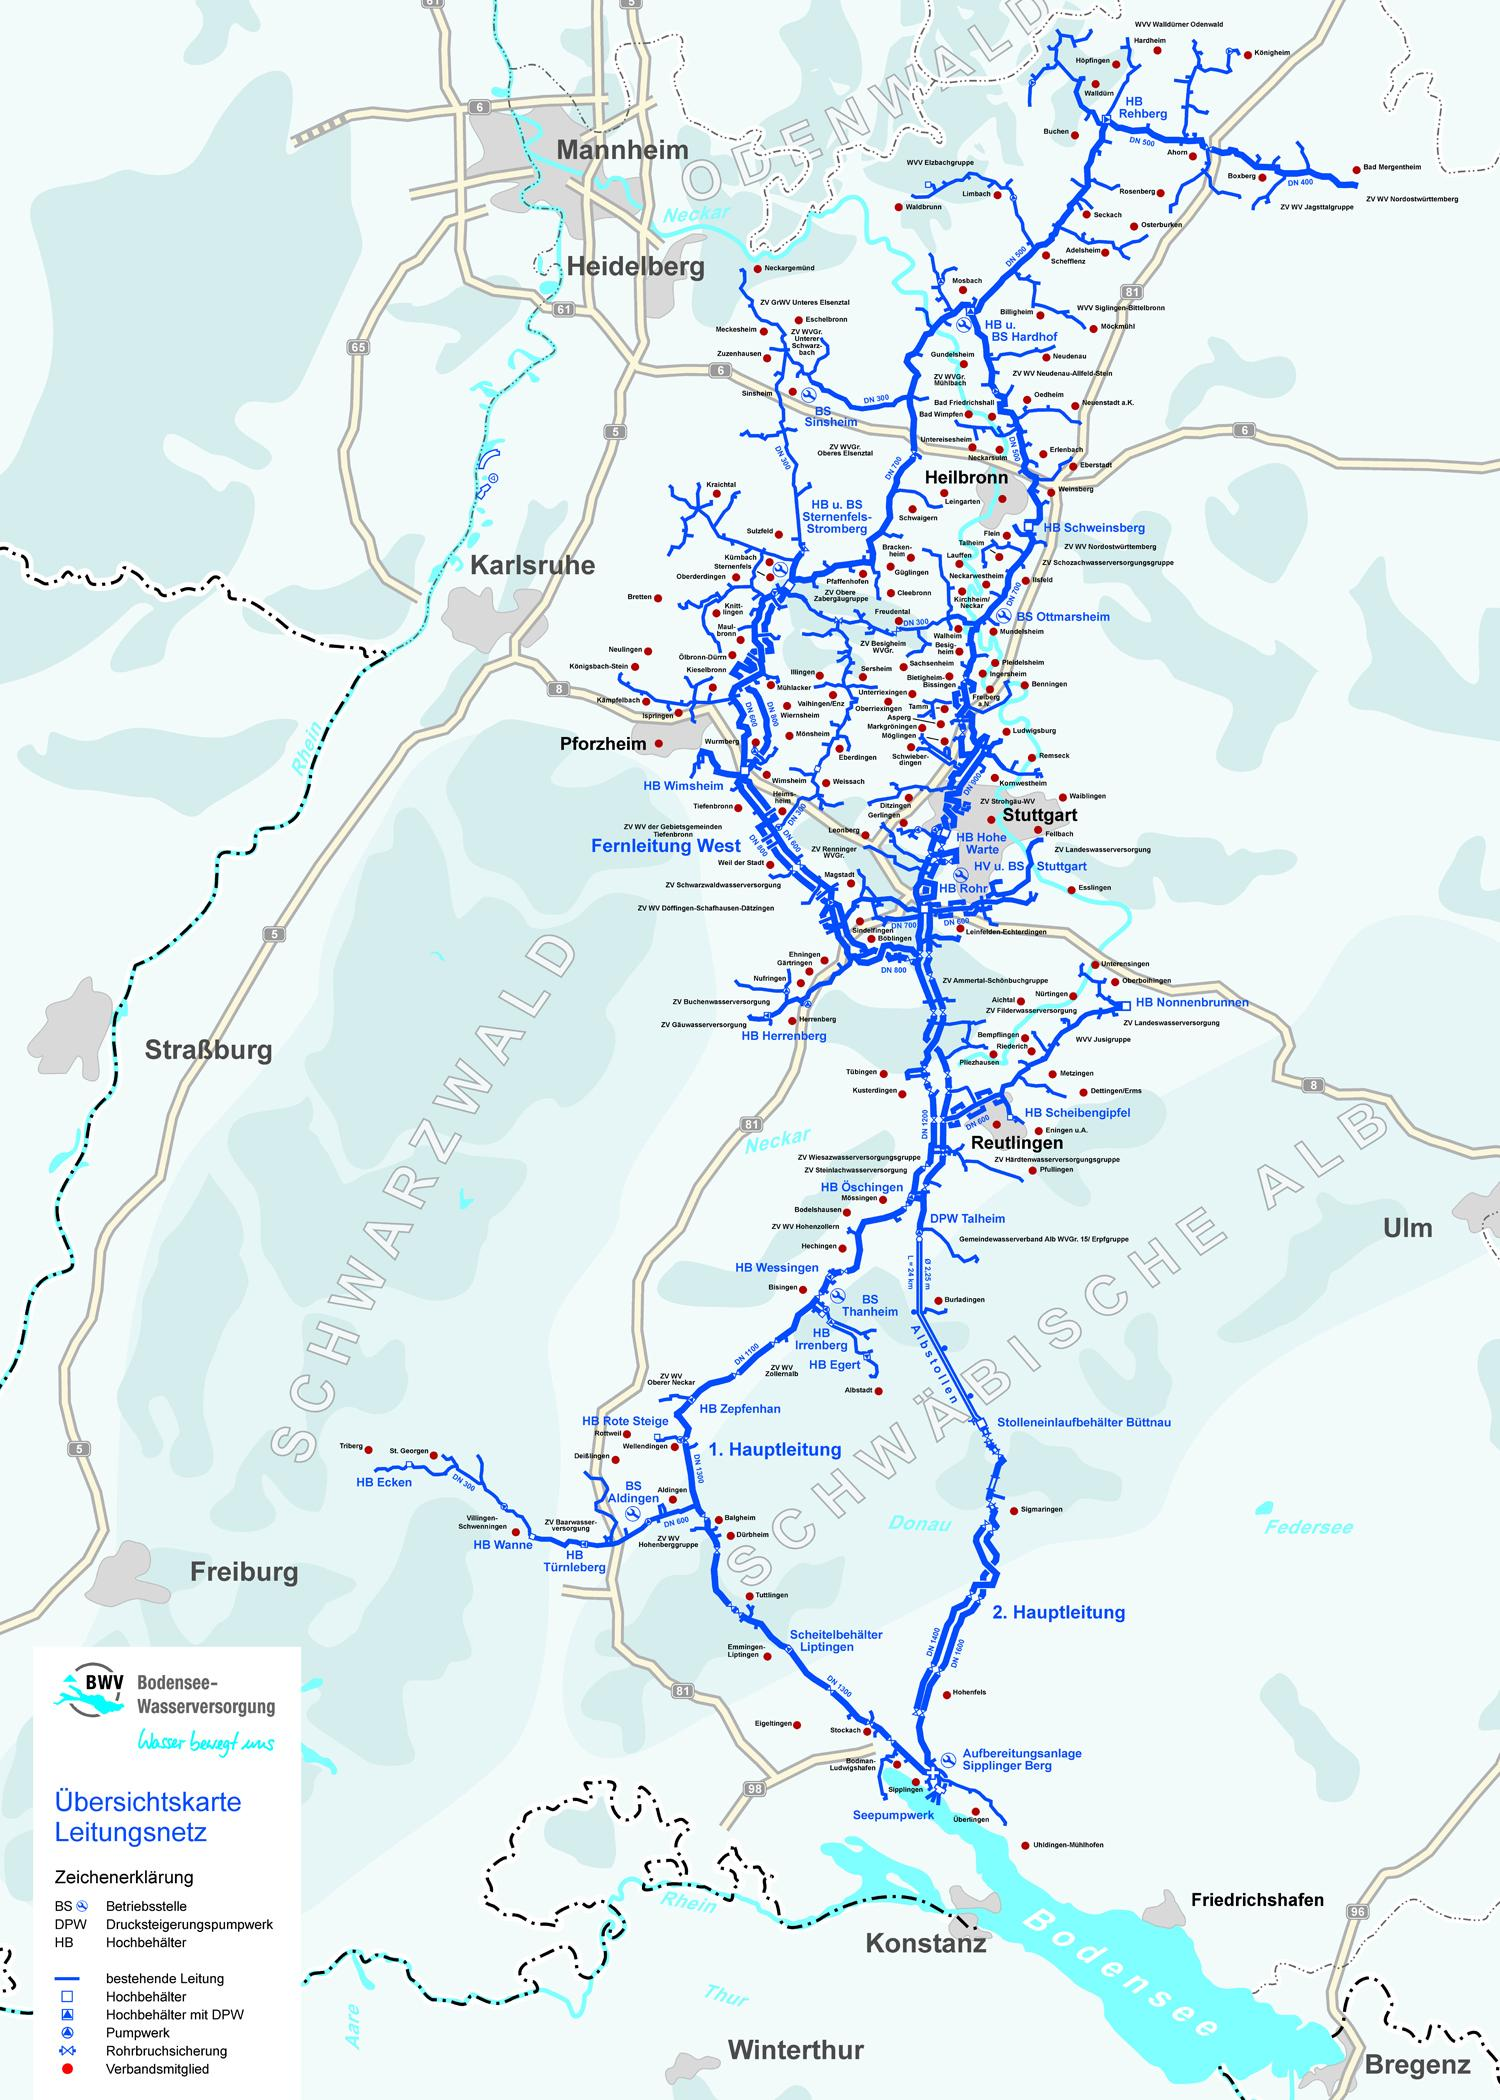 Pipeline network for supplying water from Lake Constance. Source: Lake Constance Water Supply Association